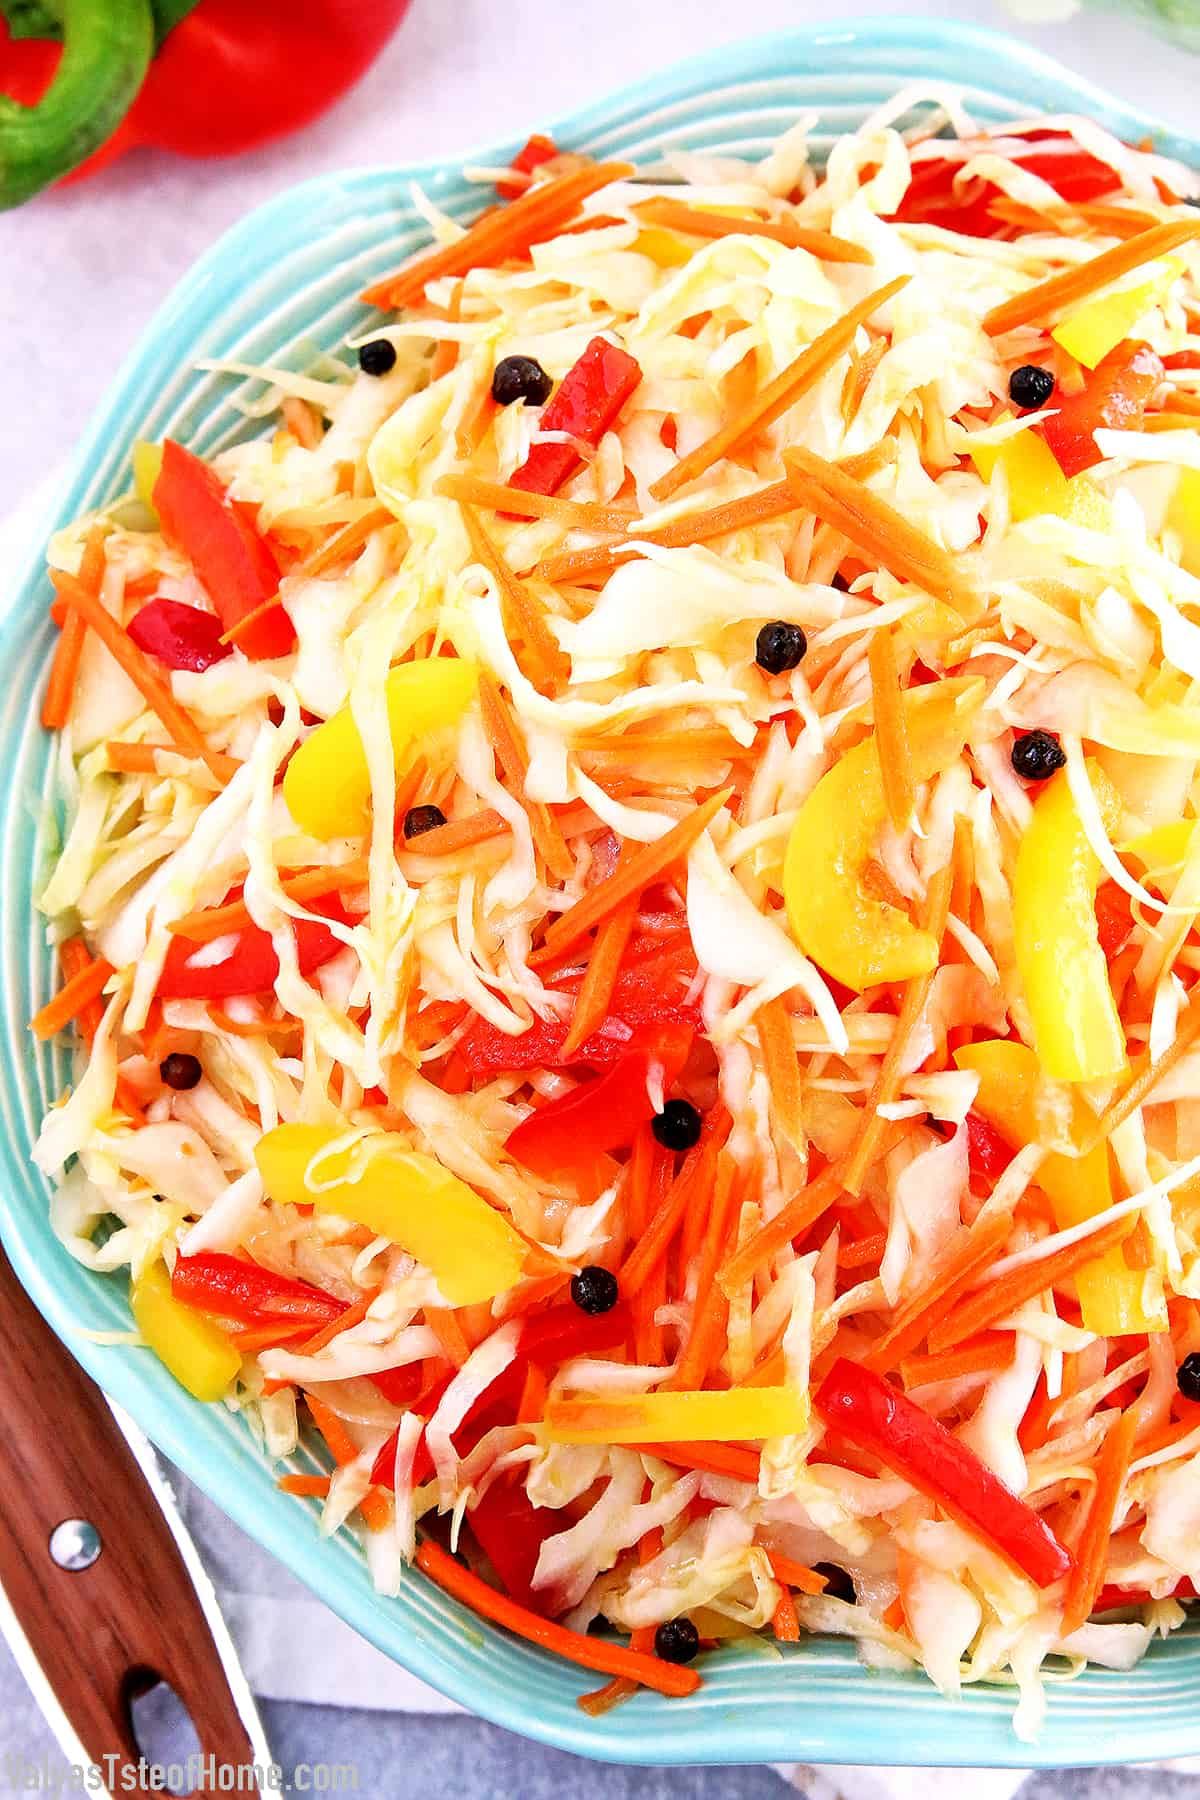 This Cabbage Carrots and Peppers Salad recipe is not one of those salads that you really taste the sharpness of fresh vegetables. It tastes more like a marinated salad and has a bit of a sweet and sour taste to it. The best thing I like about this salad is that you can make it ahead of time which helps avoid those last-minute preparation rushes.  #cabbagecarrotspepperssalad #marinatedsalad #easymarinatedvegetablesalad #valyastasteofhome